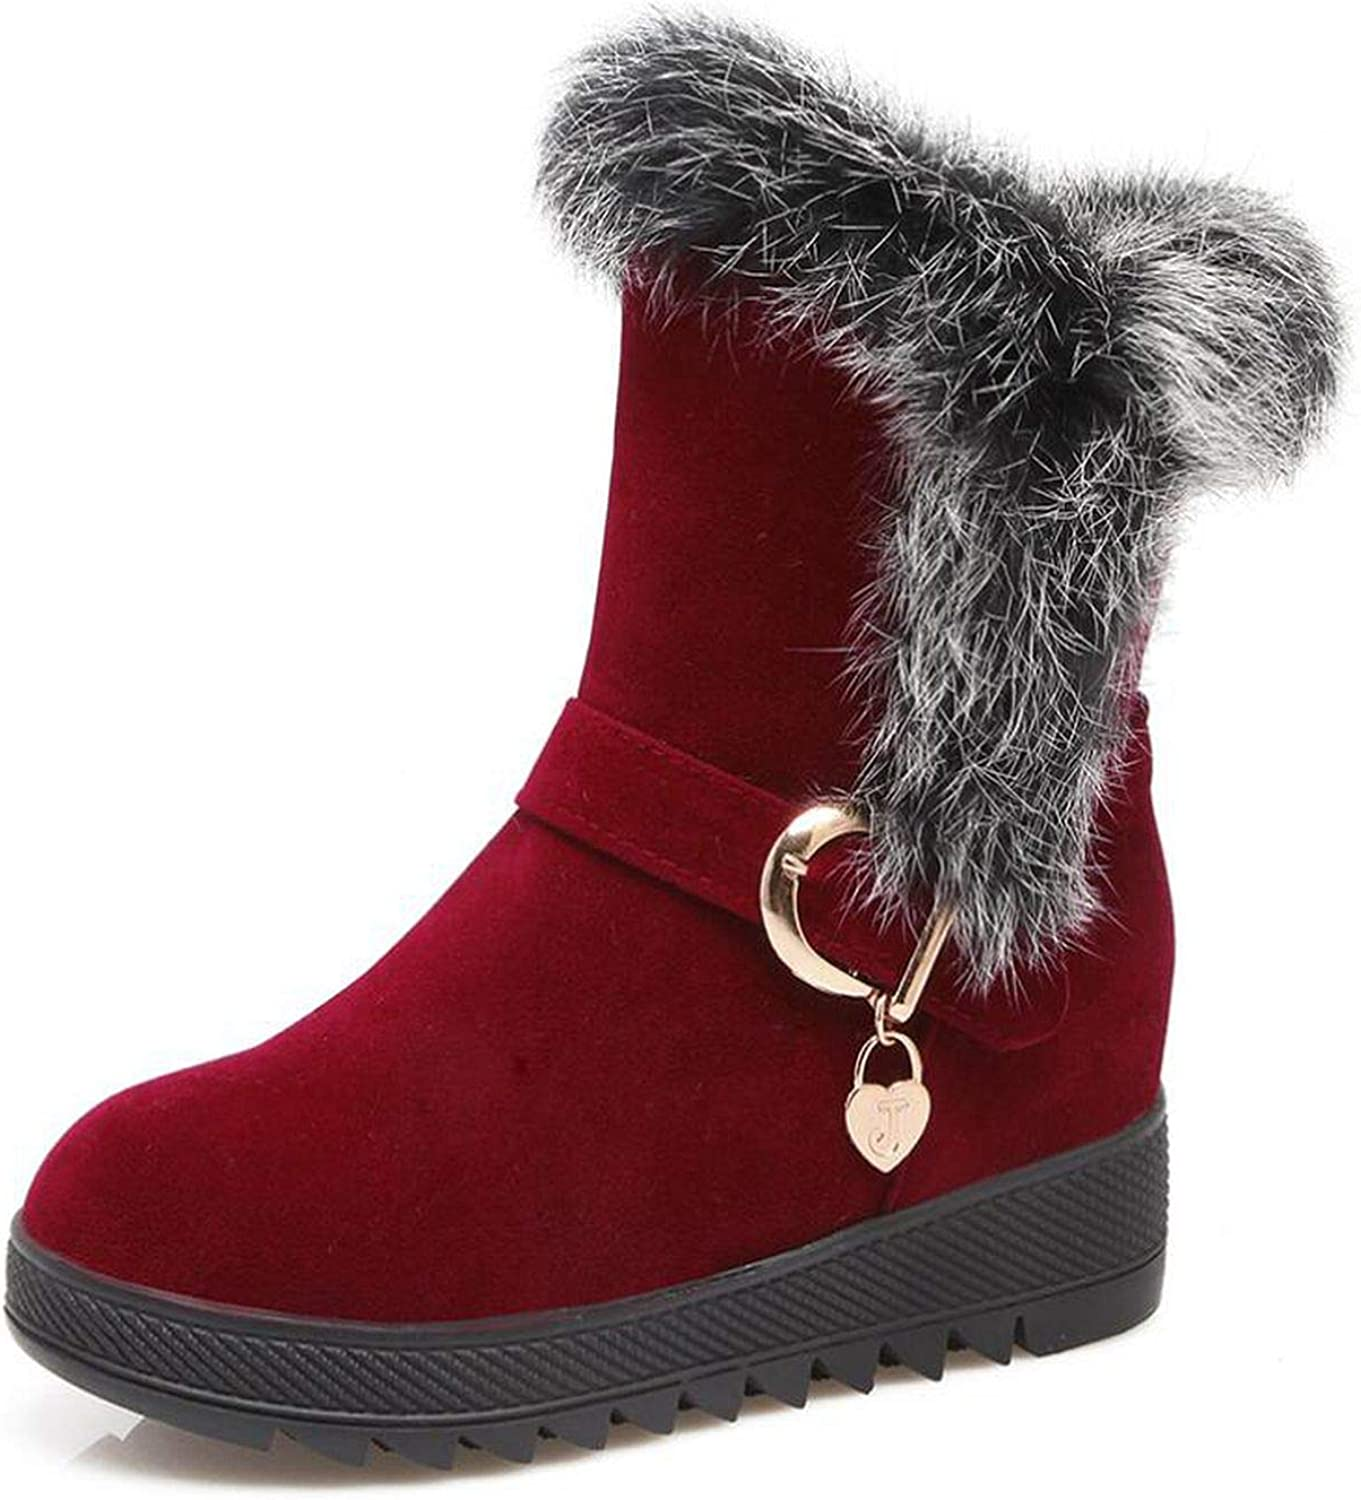 Winter Natural Rabbit Hair Snow Boots Woman Warm Flat Mid Suede Leather Short Bo